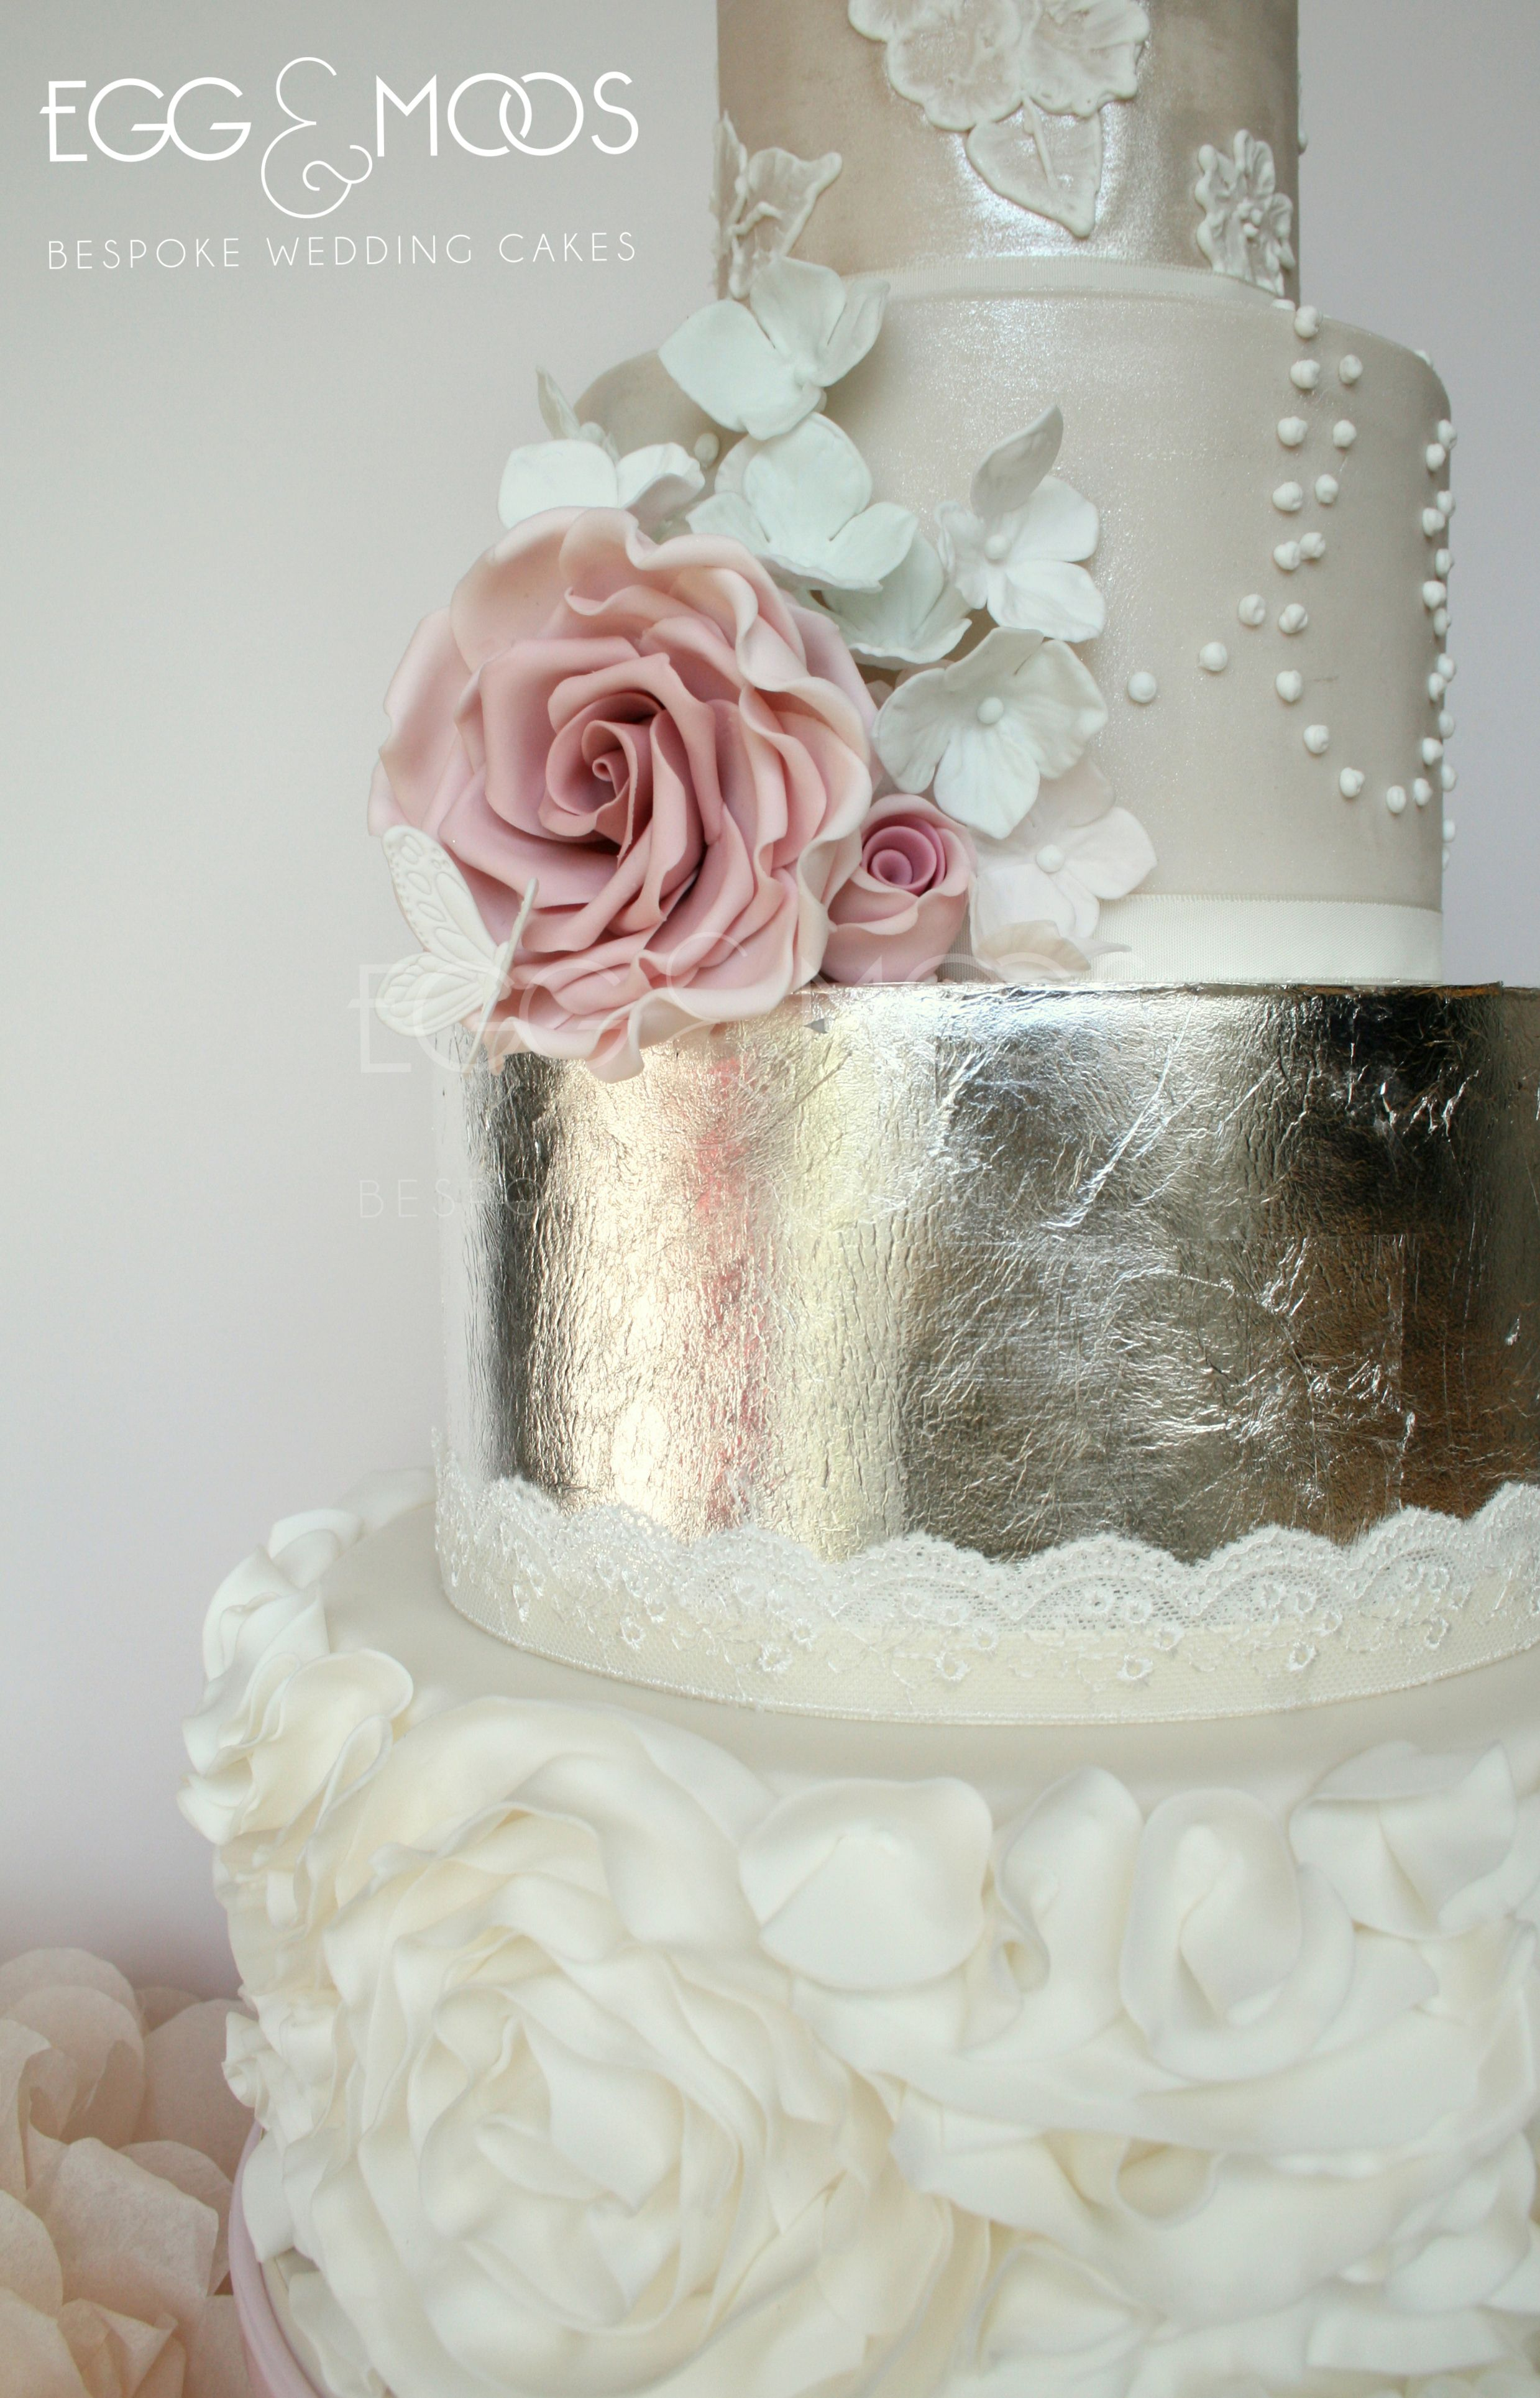 Silver leaf romance bespoke wedding cake by egg and moos starting